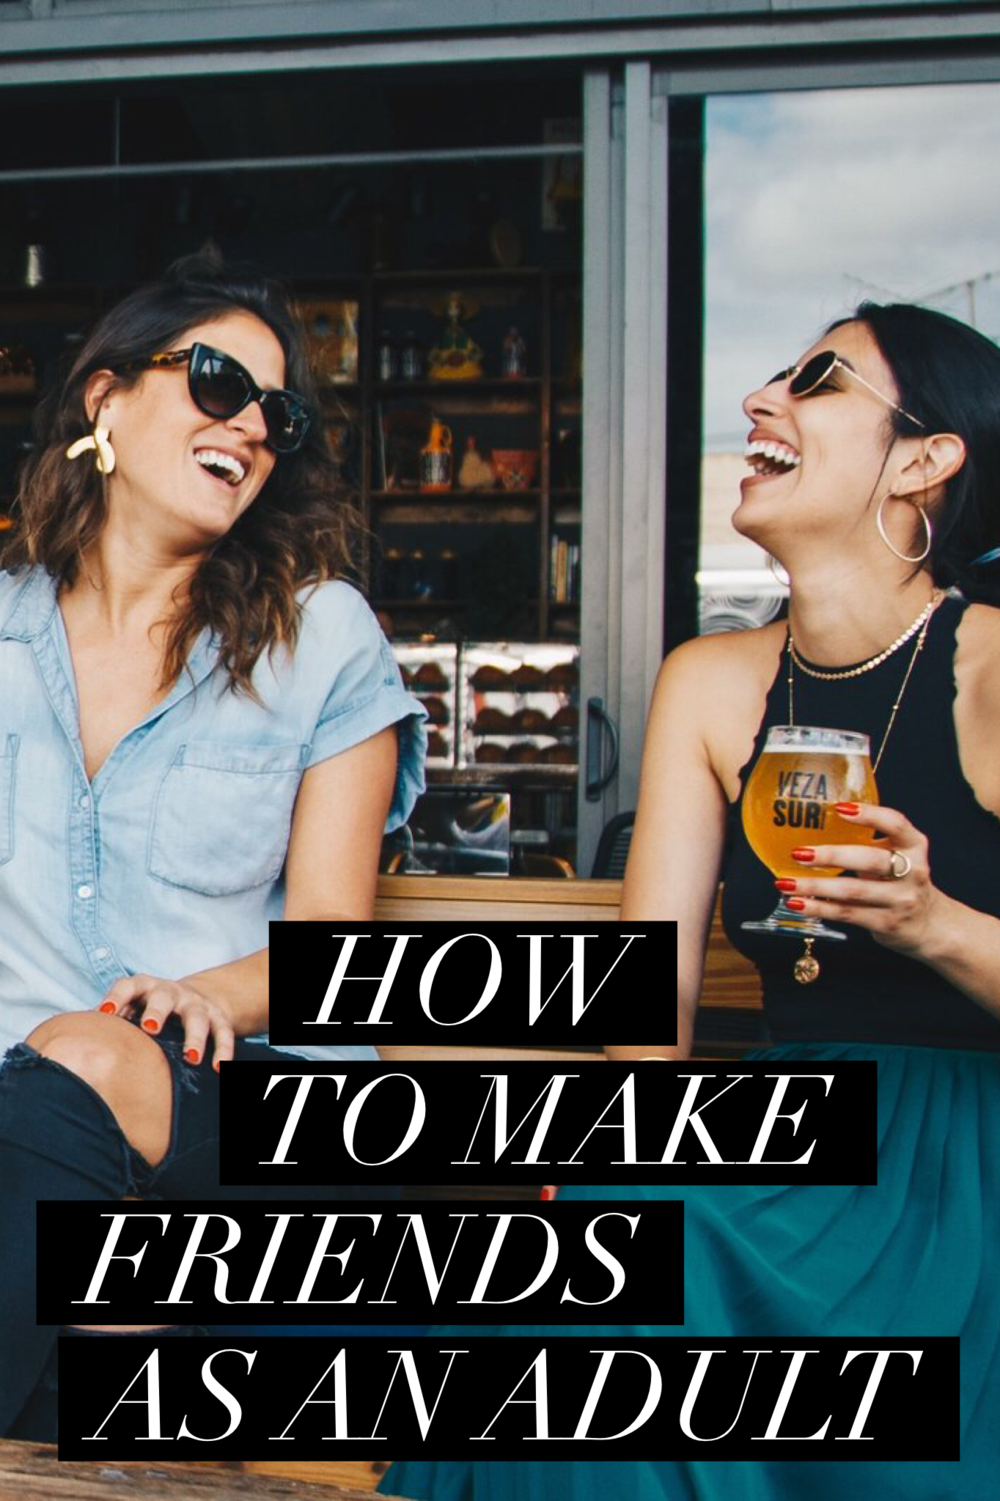 How to Make Friends as an Adult. Easy tips to finding friends, reaching out to them, and keeping in touch.